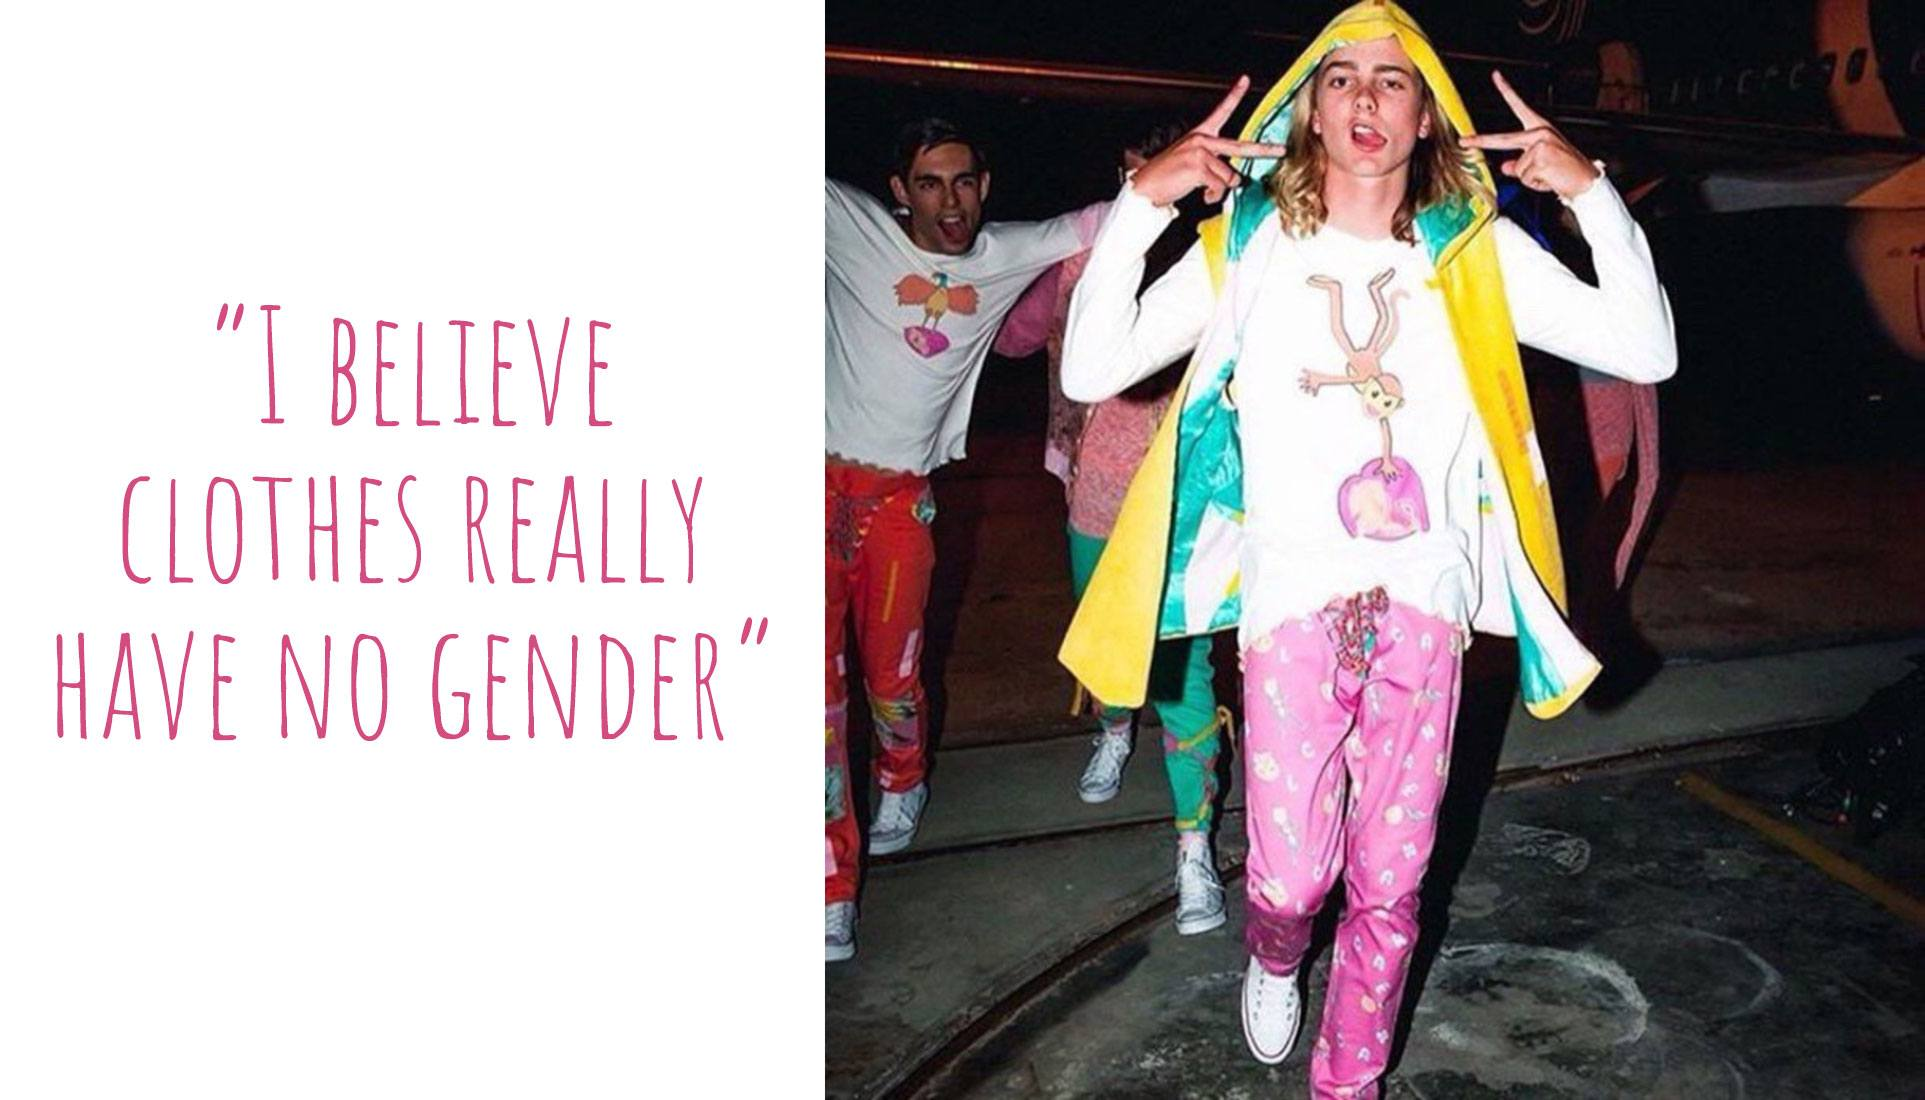 Young men modelling colourful gender atypical outfits from Christina's collections: 'I believe clothes really have no gender'